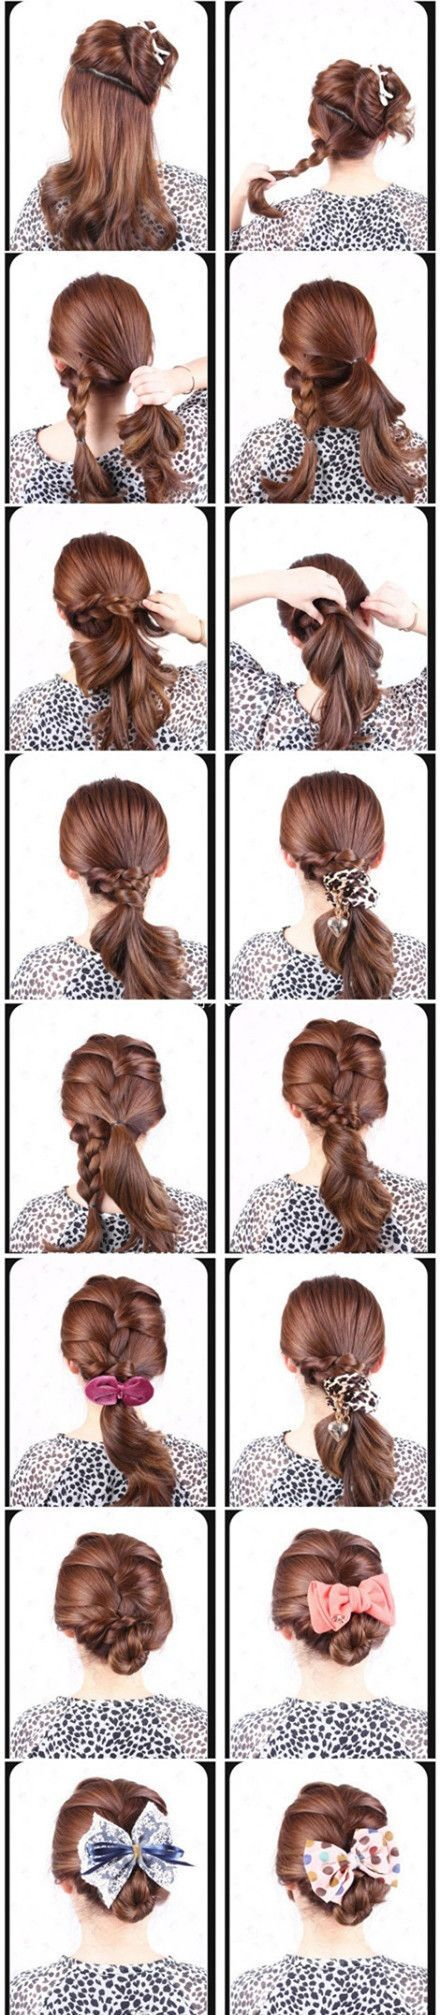 WOW, so many cute and easy hairstyles and easy visual how-tos!!